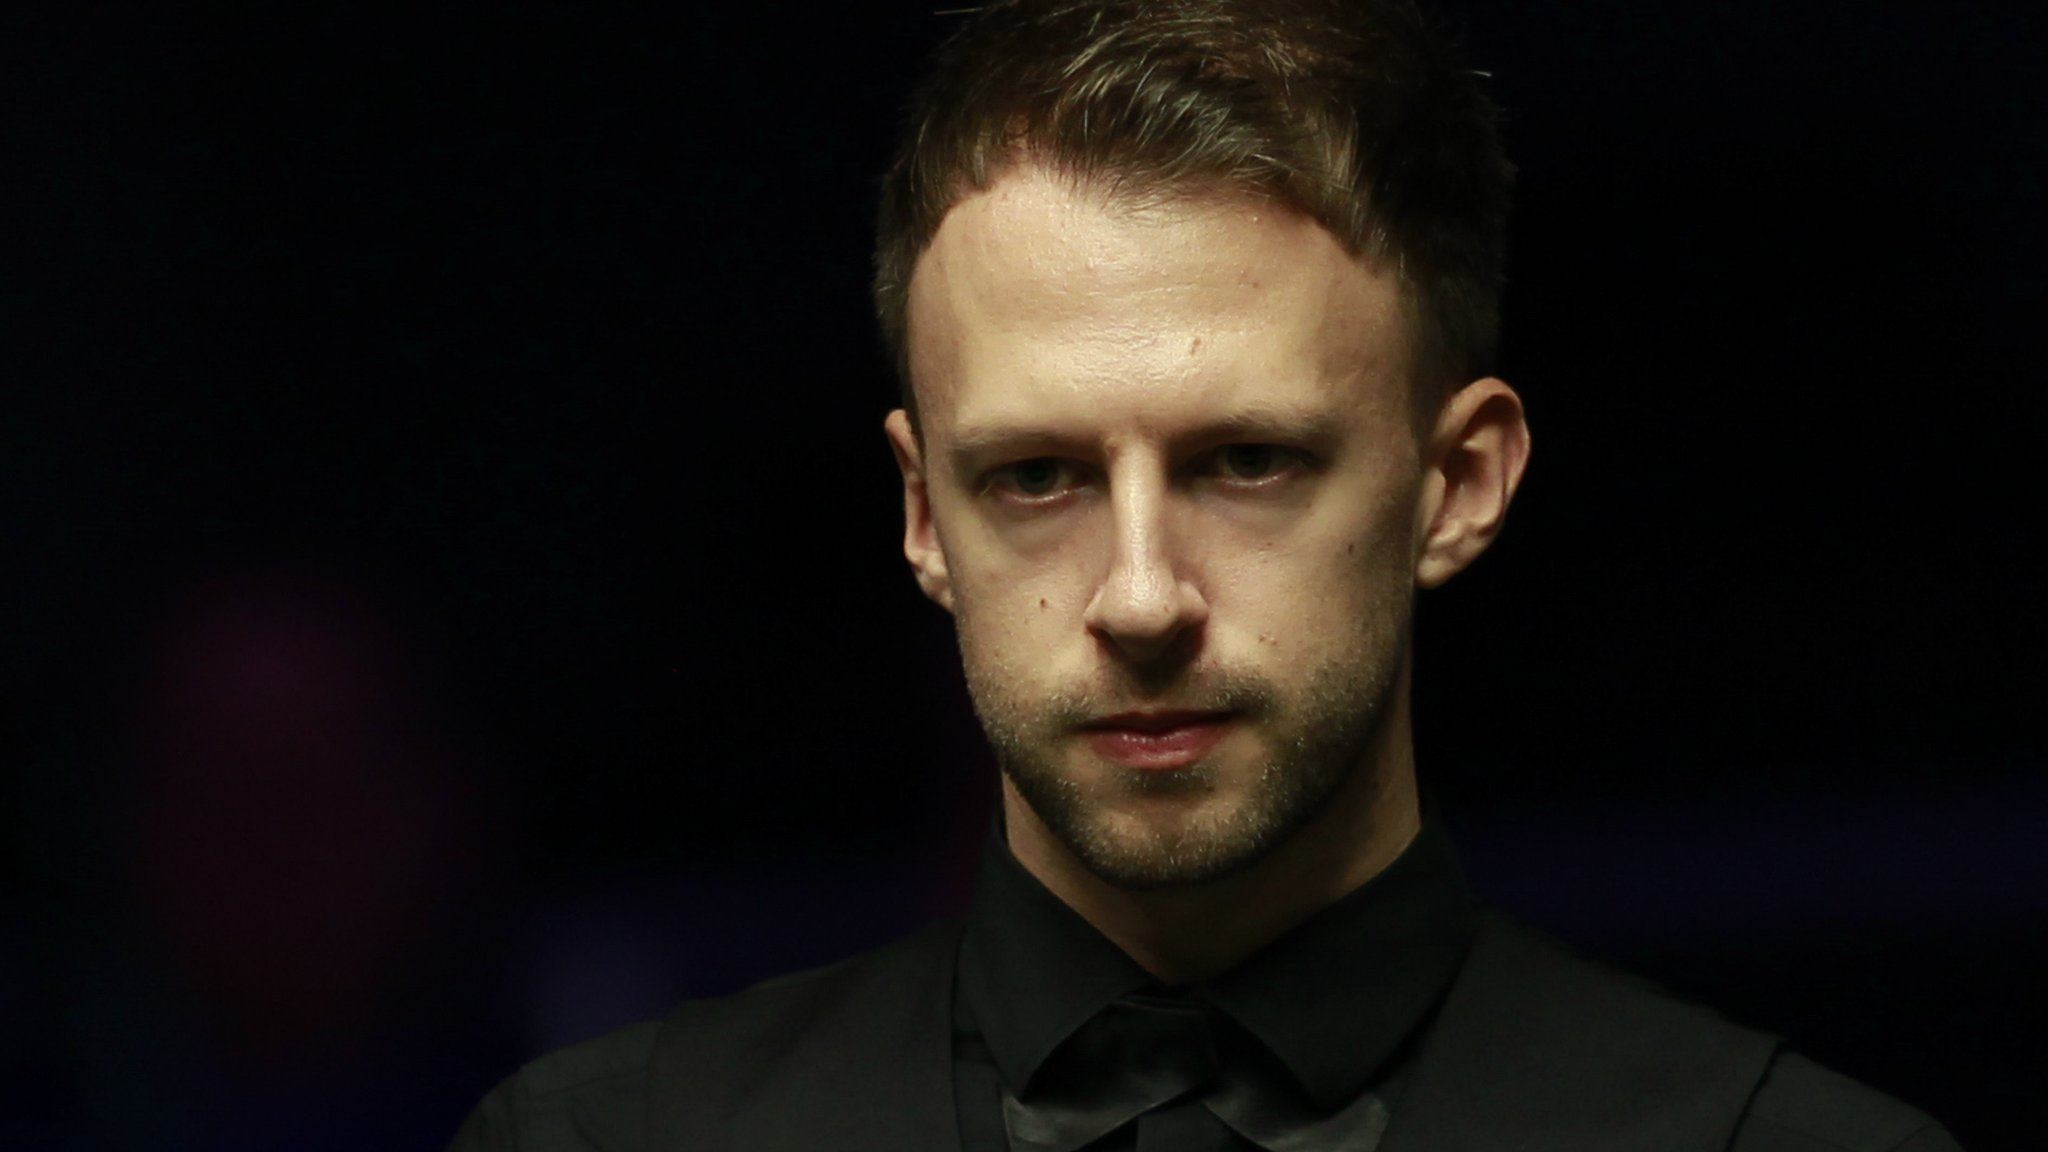 UK Championship: Former champions Ding Junhui and Judd Trump knocked out in last 16